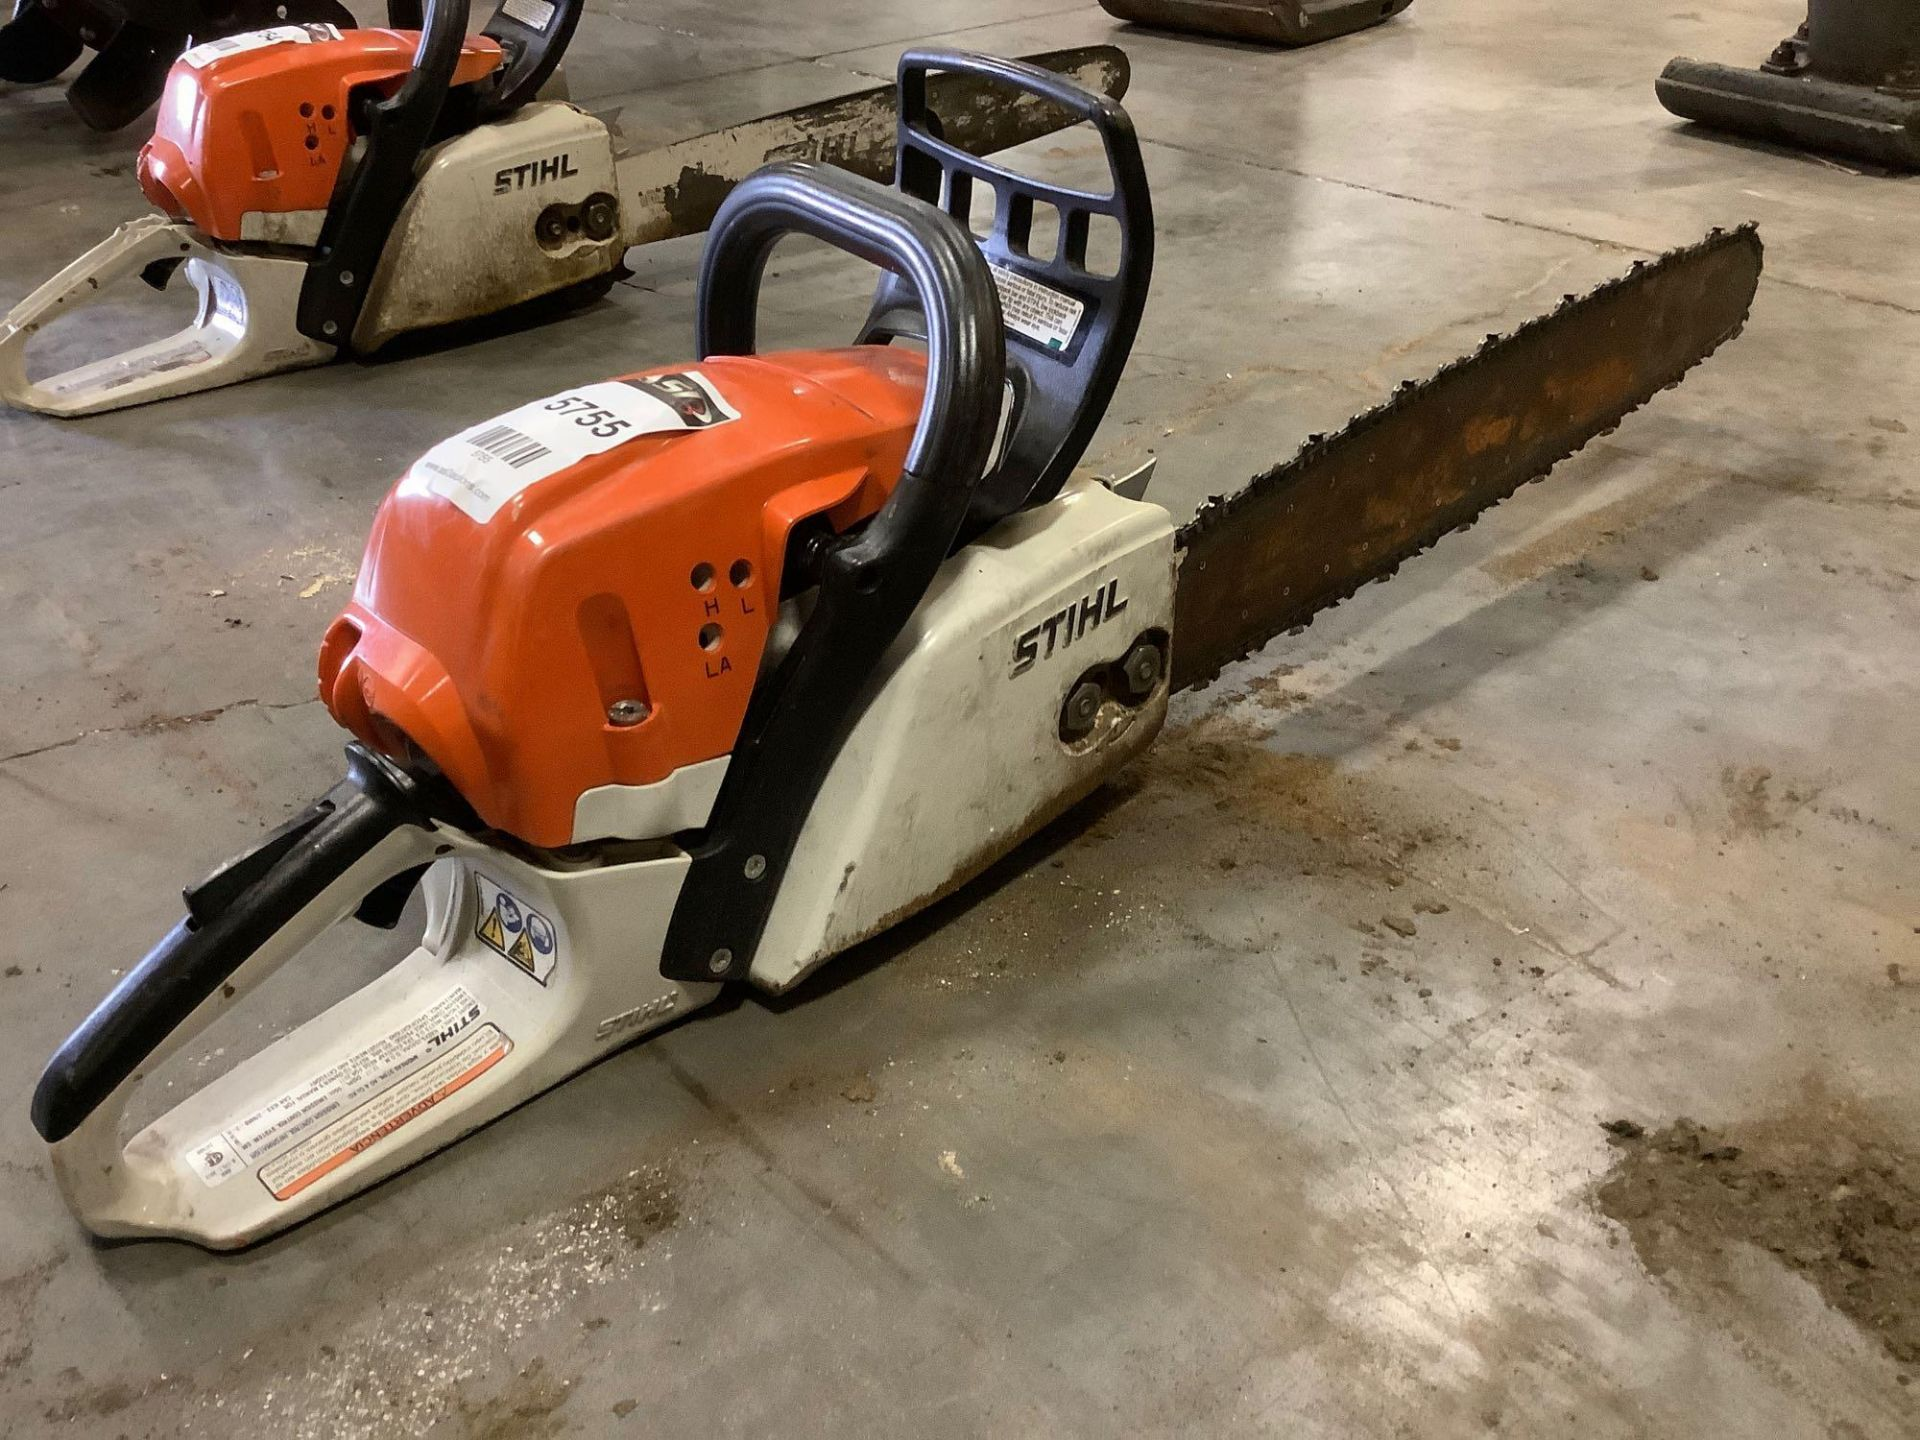 2018 STIHL CHAIN SAW MODEL MS291 - Image 4 of 5